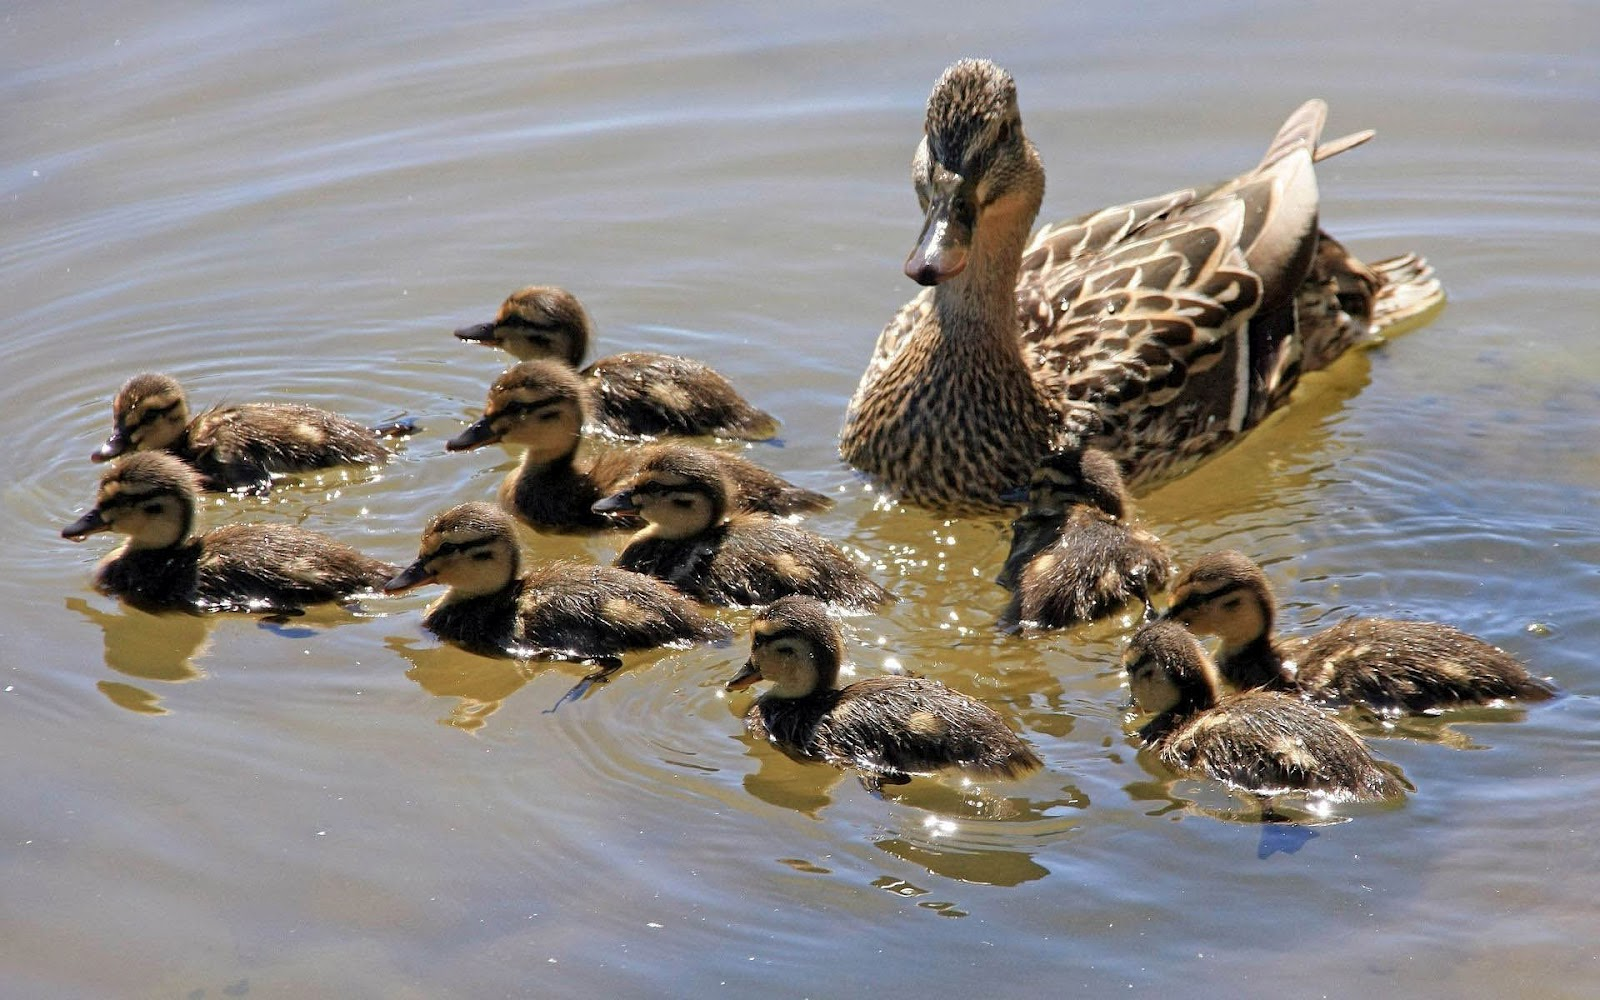 http://2.bp.blogspot.com/-xwWlvnRfD04/UDkOAaZlmRI/AAAAAAAABGg/wHucYgSl1SQ/s1600/hd-ducks-wallpaper-with-swimming-ducks-wallpapers-backgrounds-pictures-photos.jpg